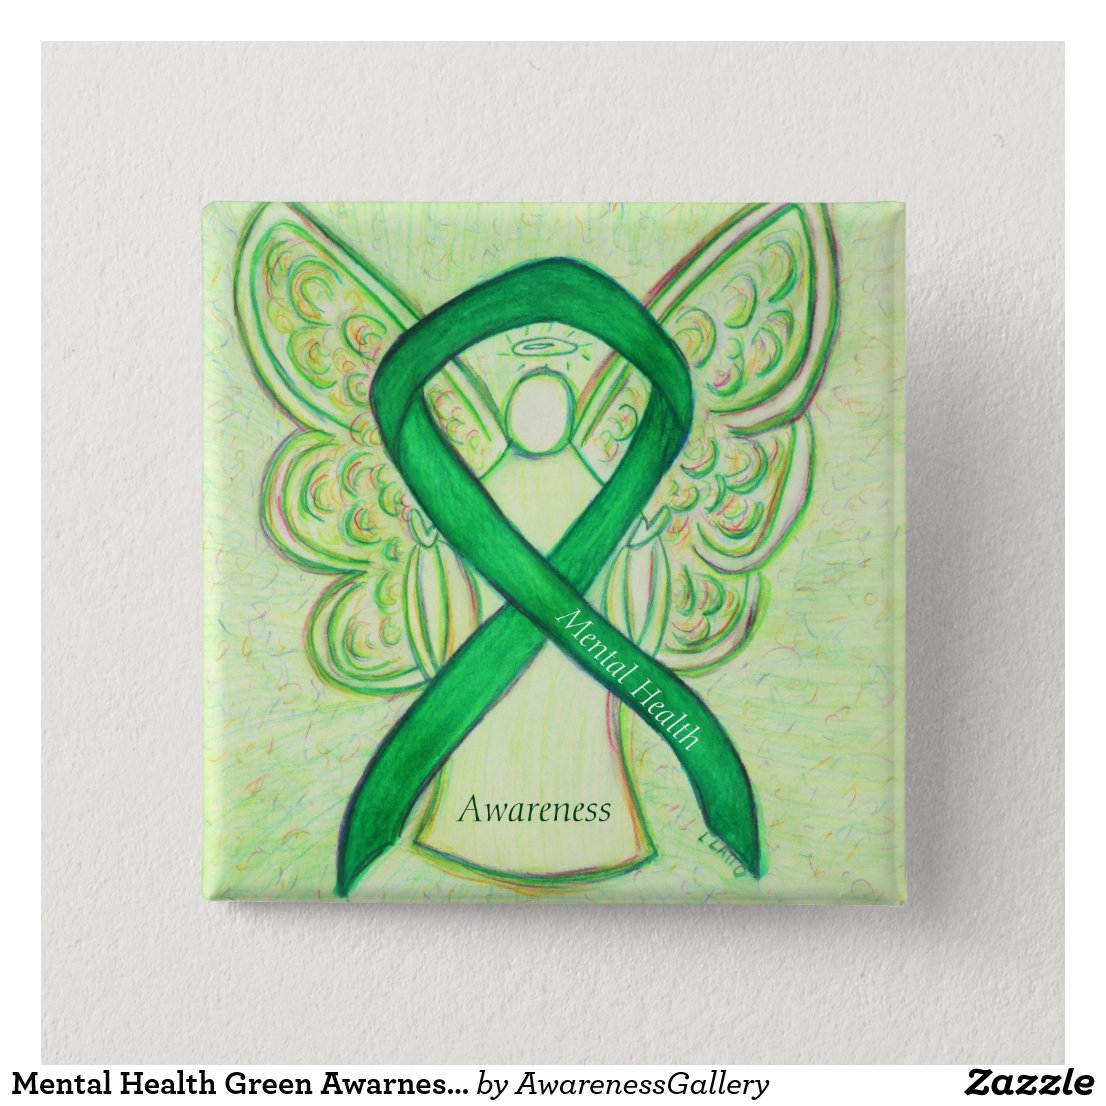 Mental Health Green Awarness Ribbon Angel Pin